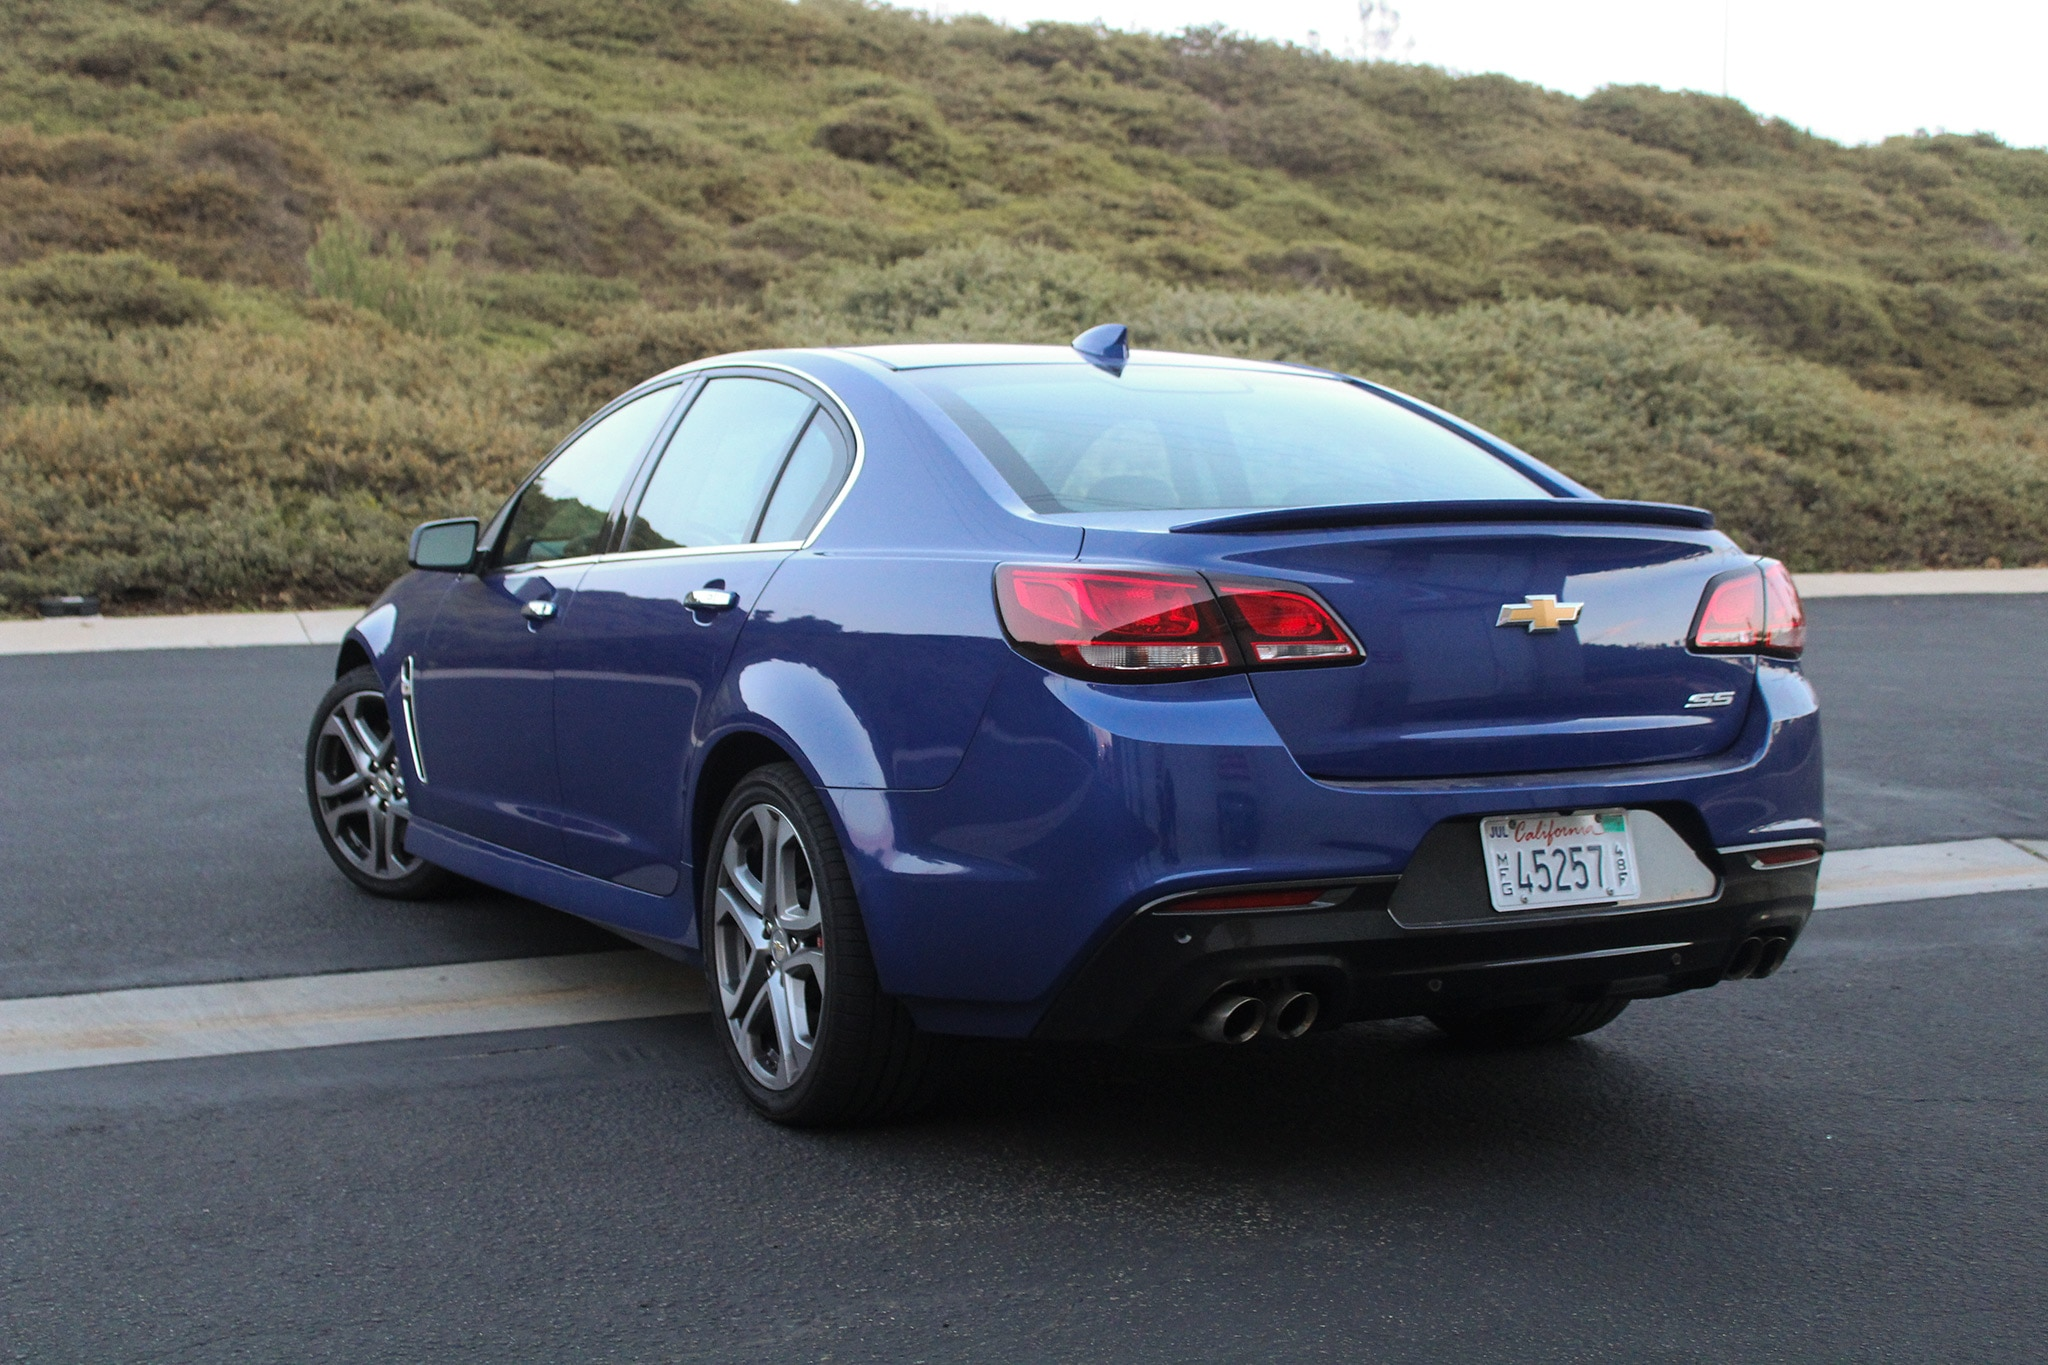 Chevy 0 60 >> 2017 Chevrolet SS One Week Review |Automobile Magazine